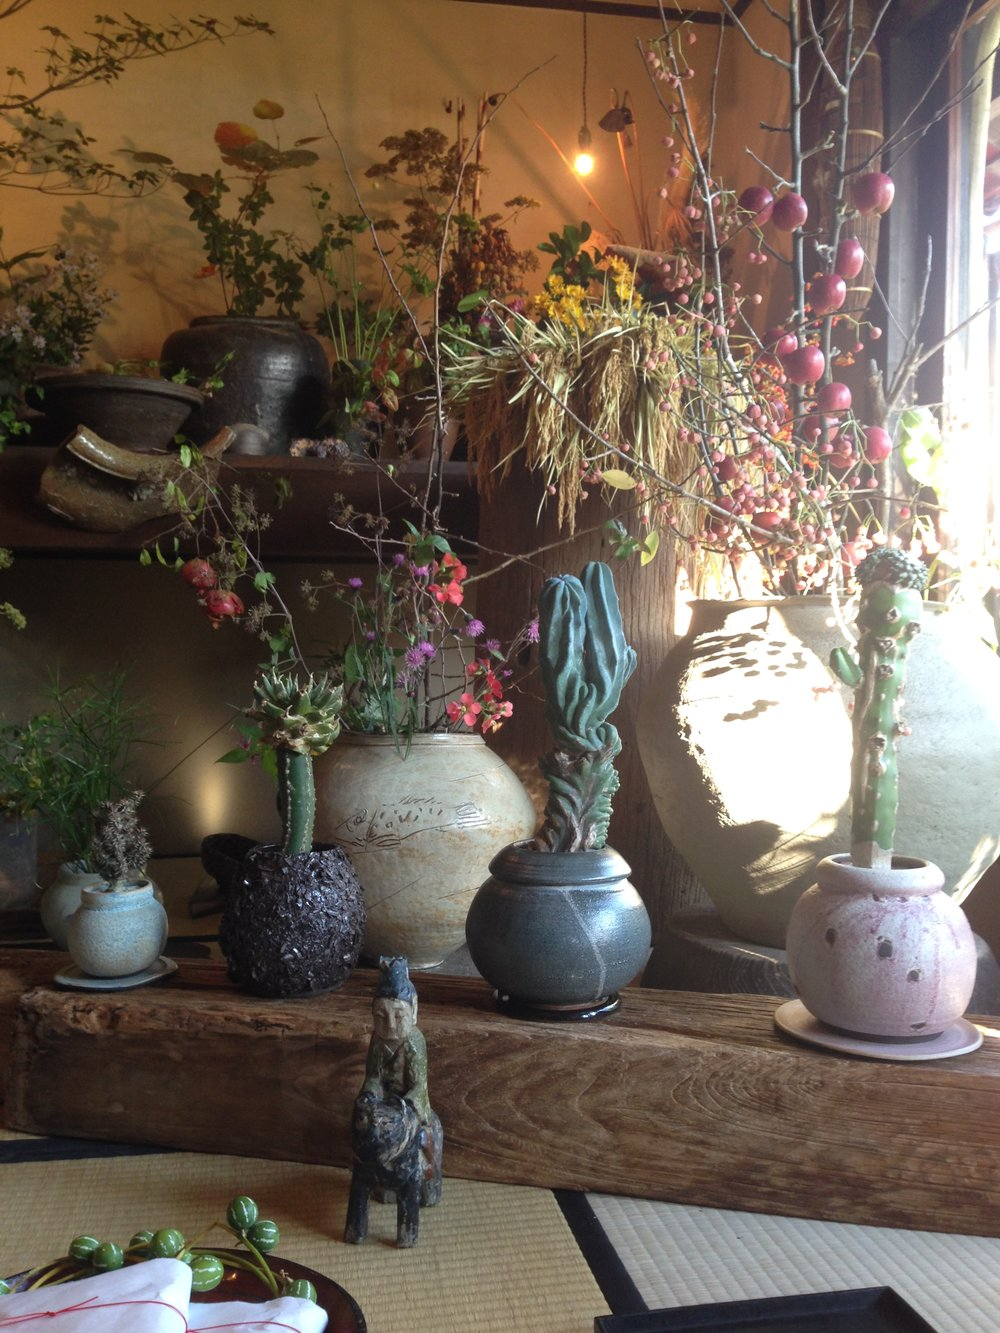 Mitate // Beautiful plant shop. Everything is foraged by the owner.